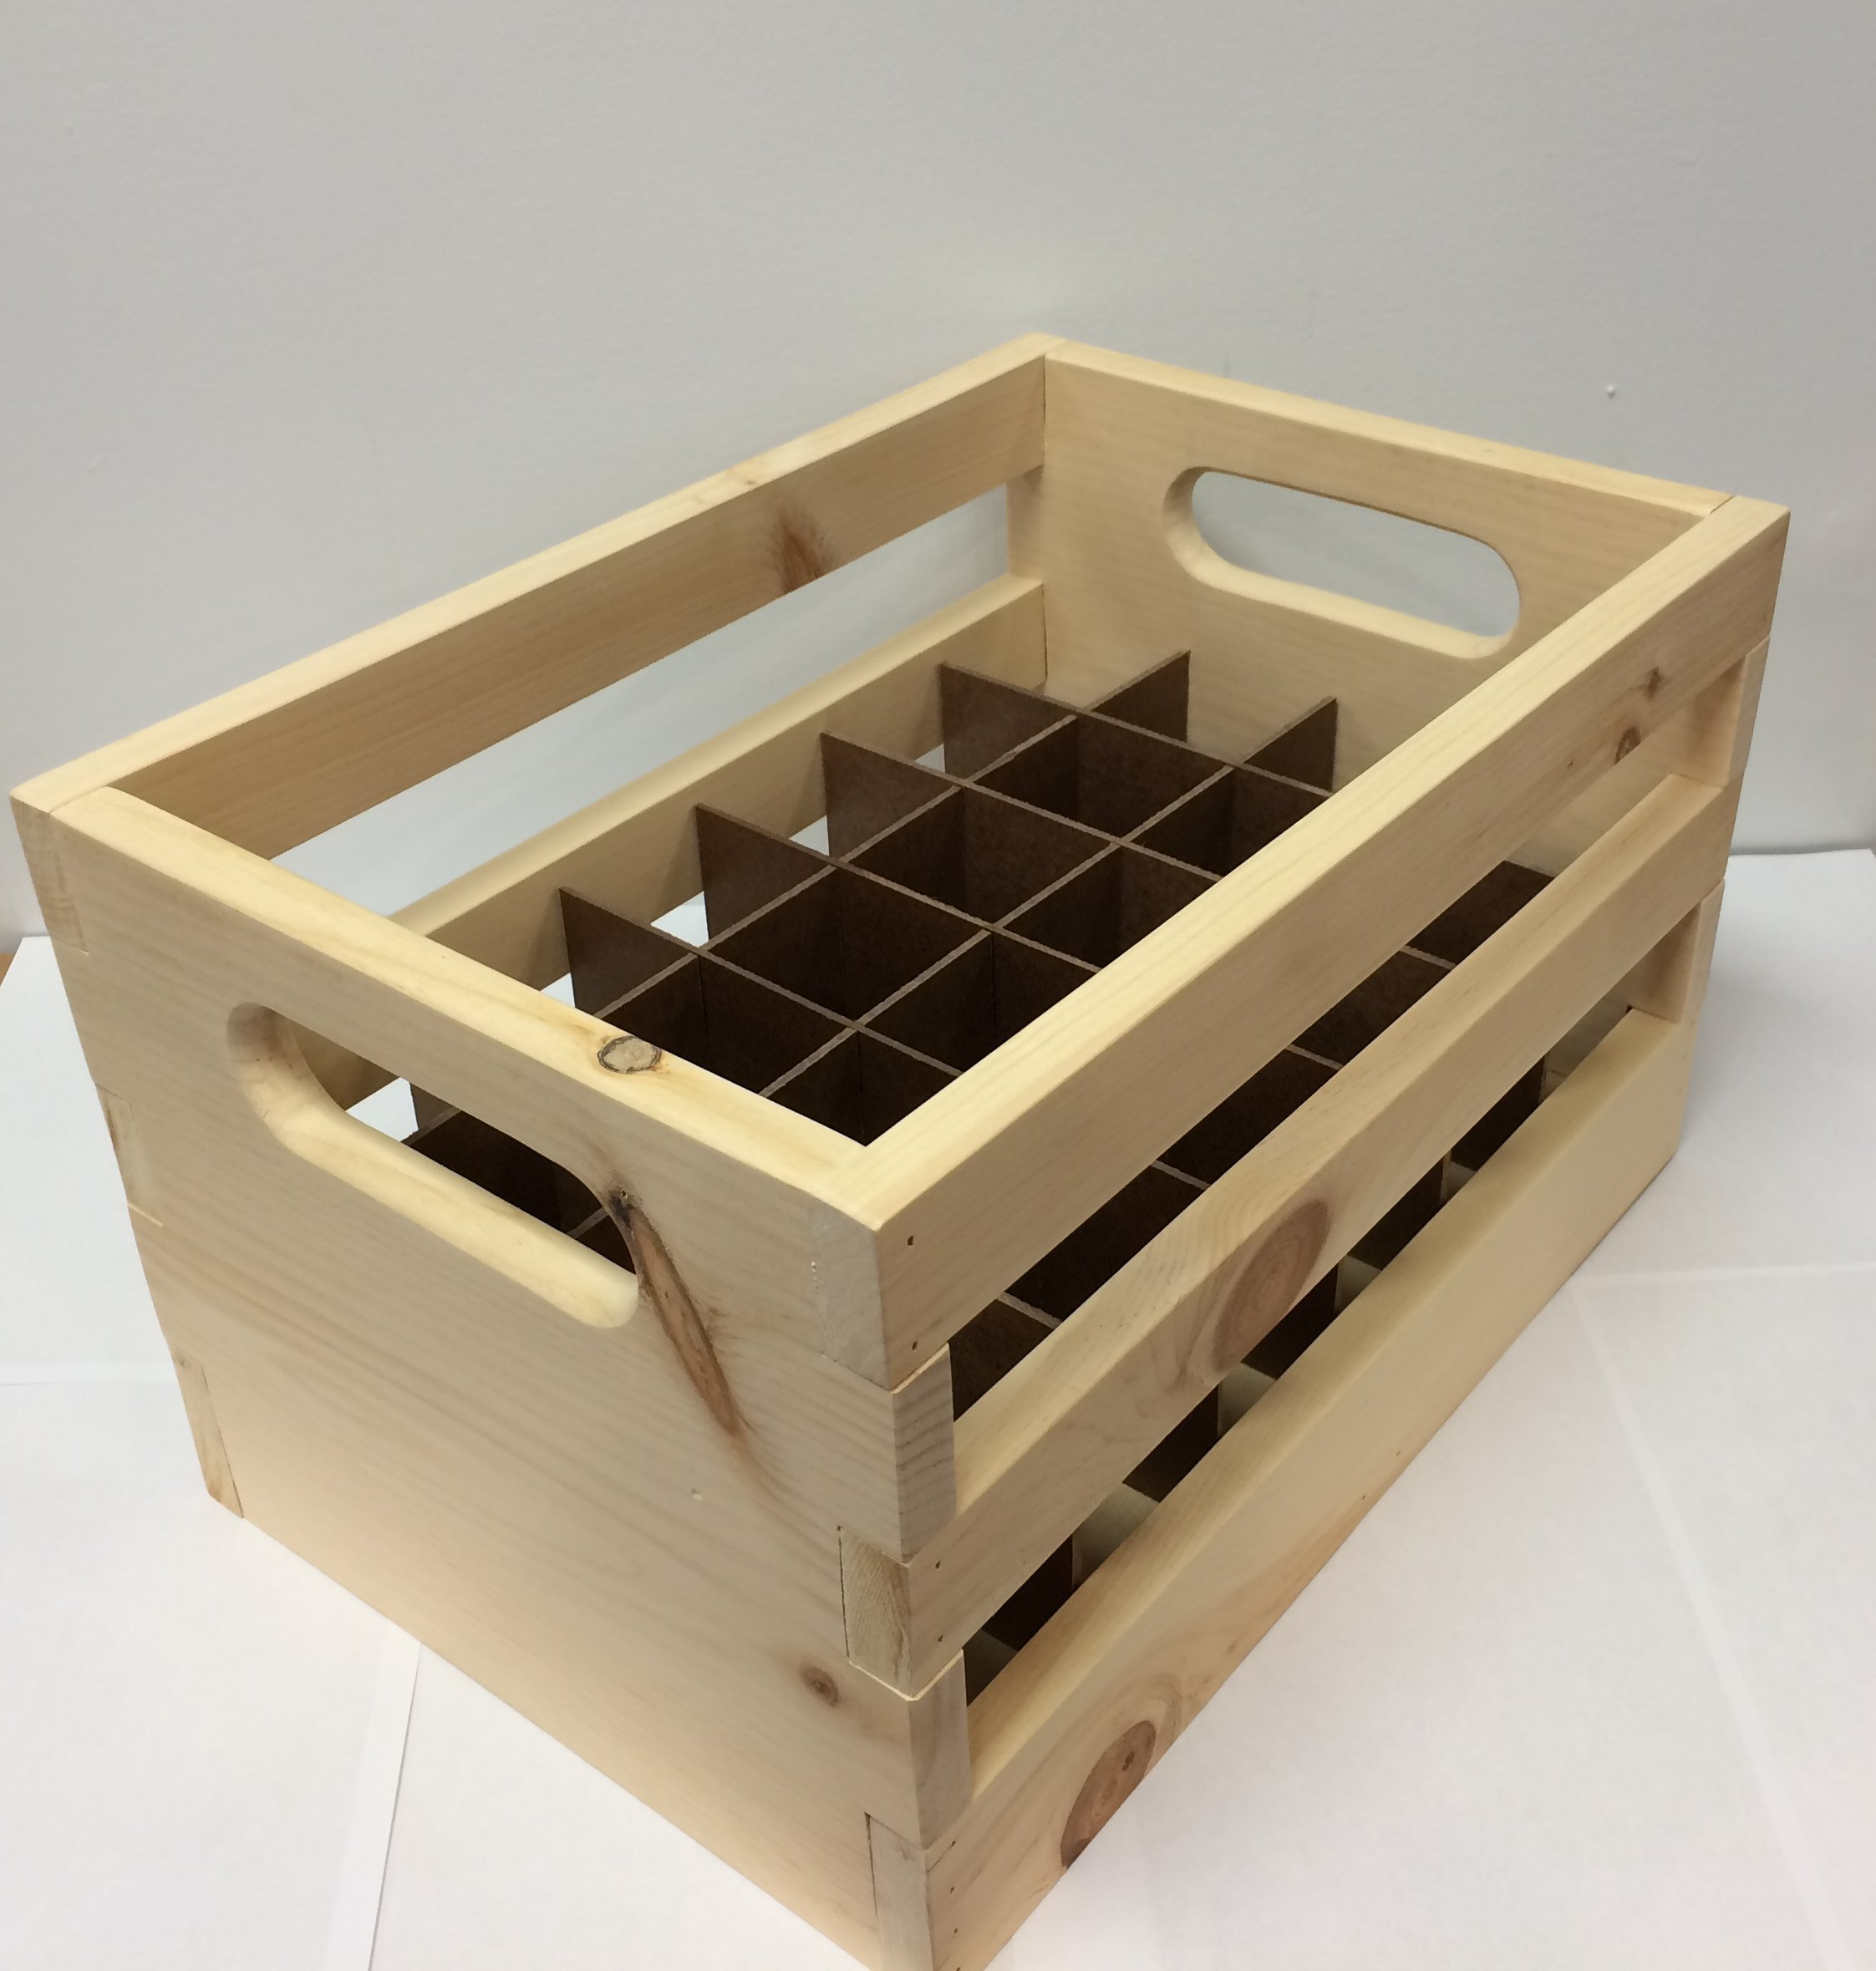 Hand Made Wooden Beer Bottle Crate. 24-Bottle Capacity. Made Locally In The USA!